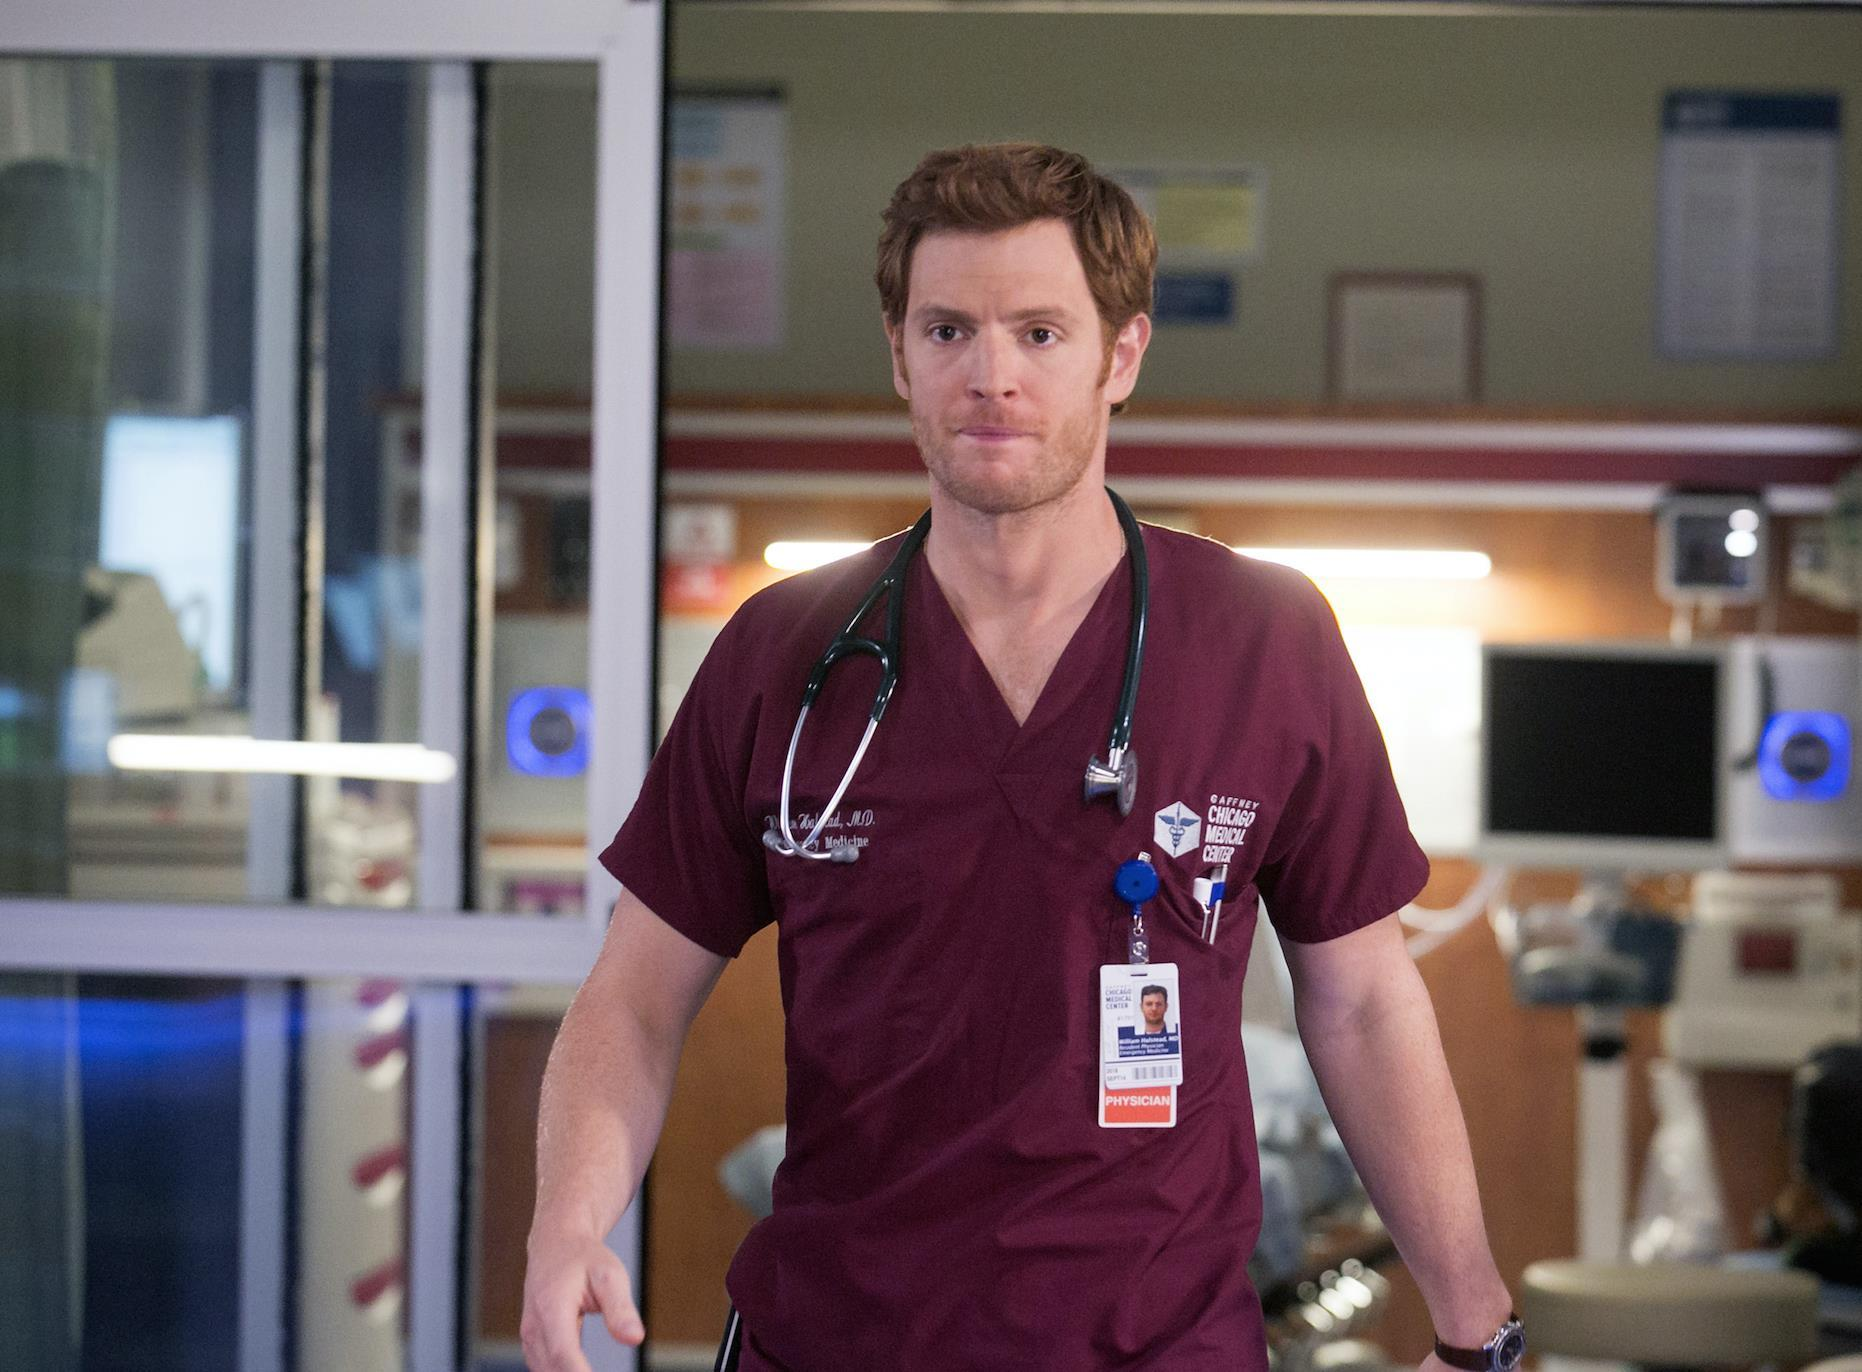 2. Dr. Will Halstead